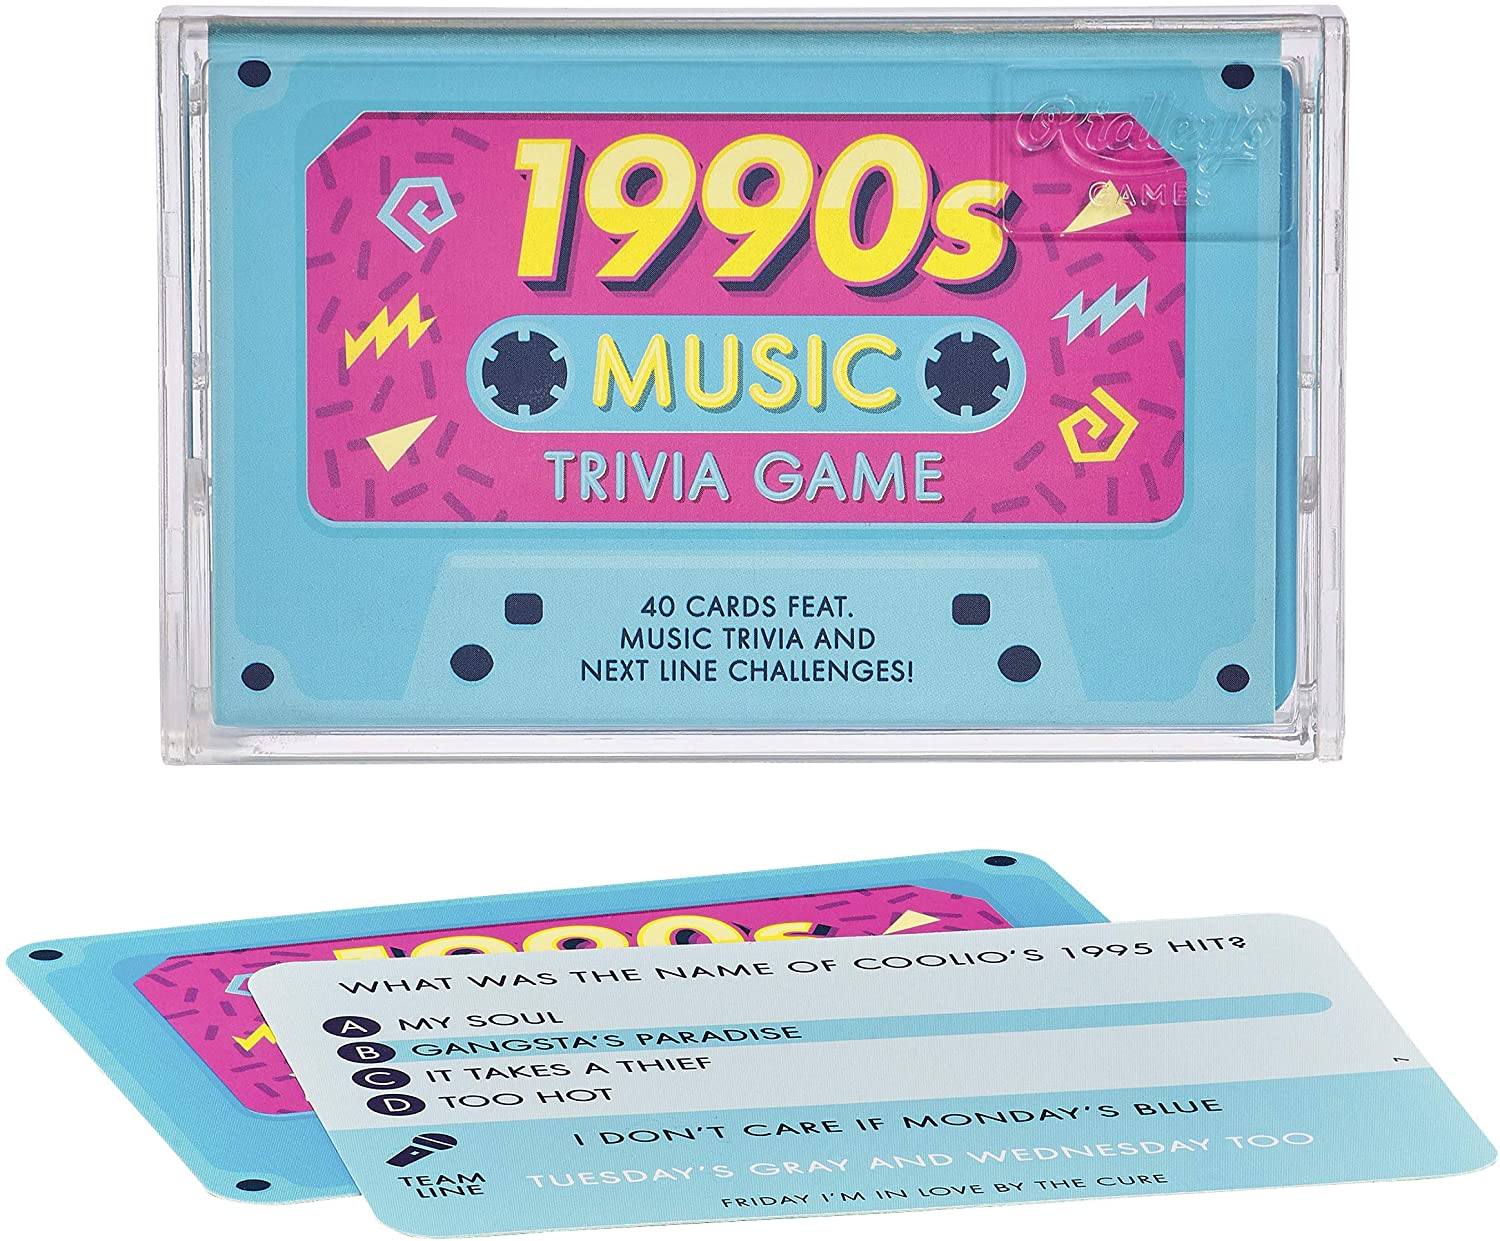 Ridley's 1990s Music Trivia Card Game